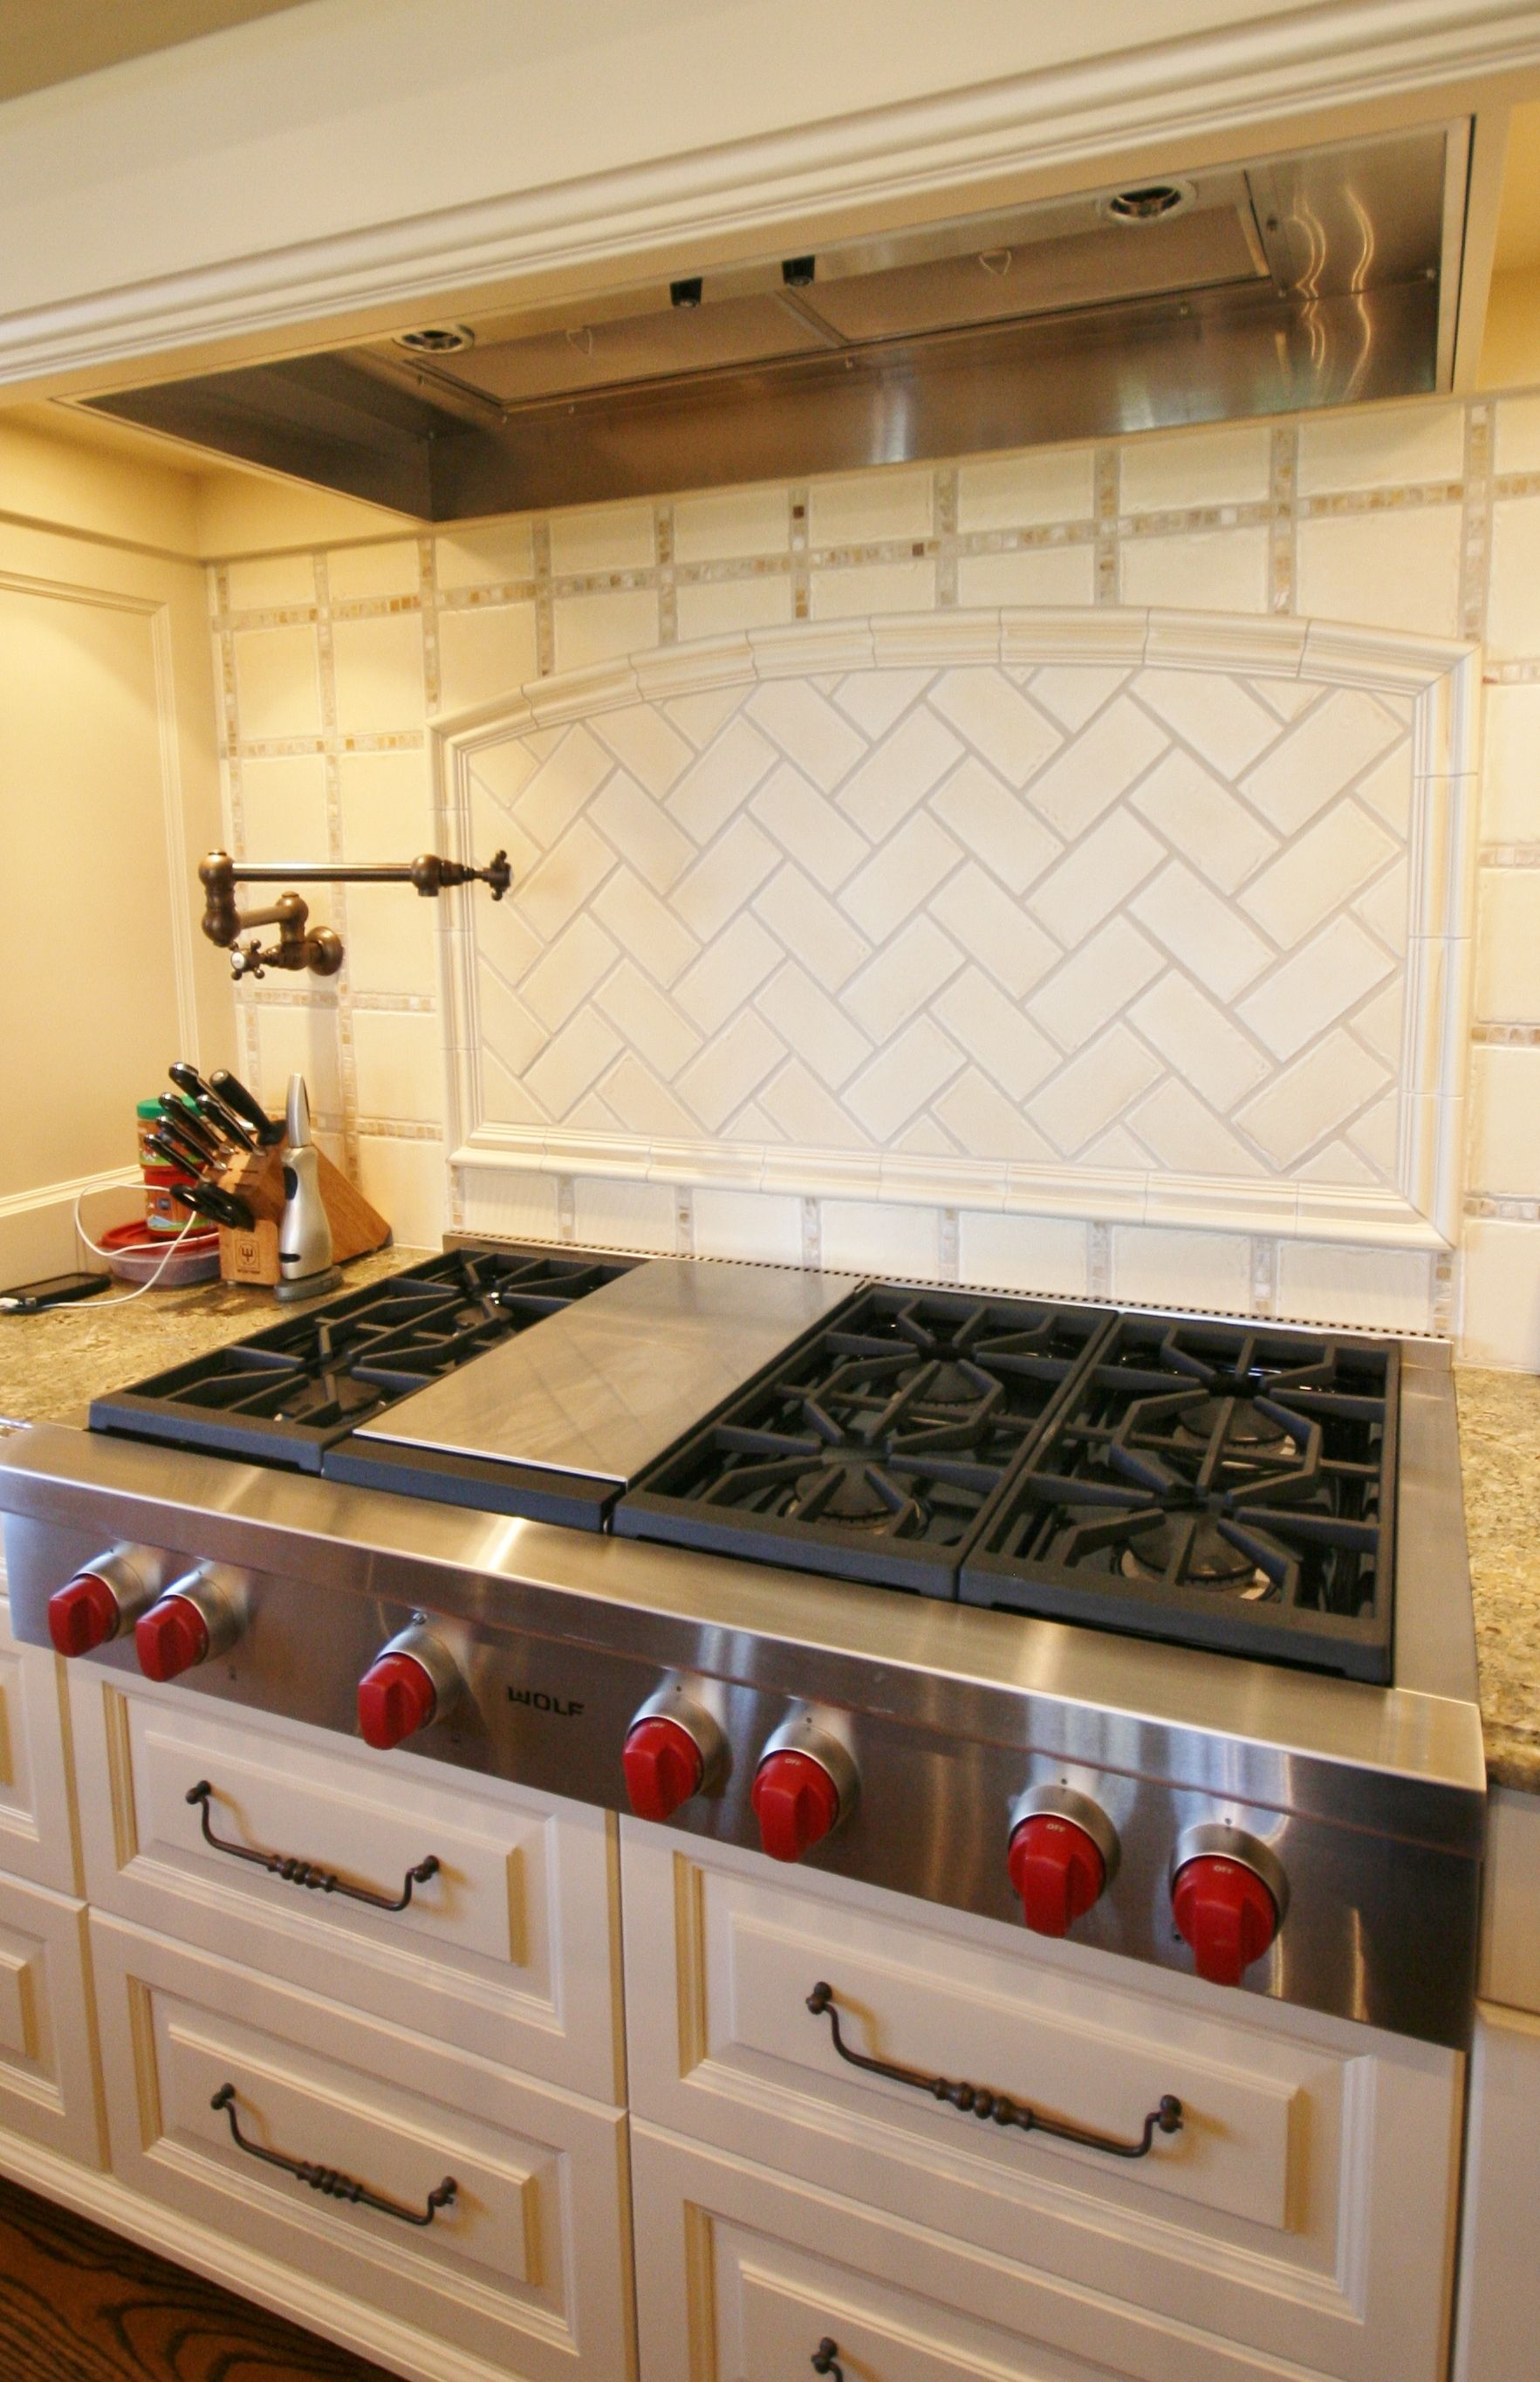 - Wolf Range With 6 Burners And Griddle! We Also Love The Backsplash